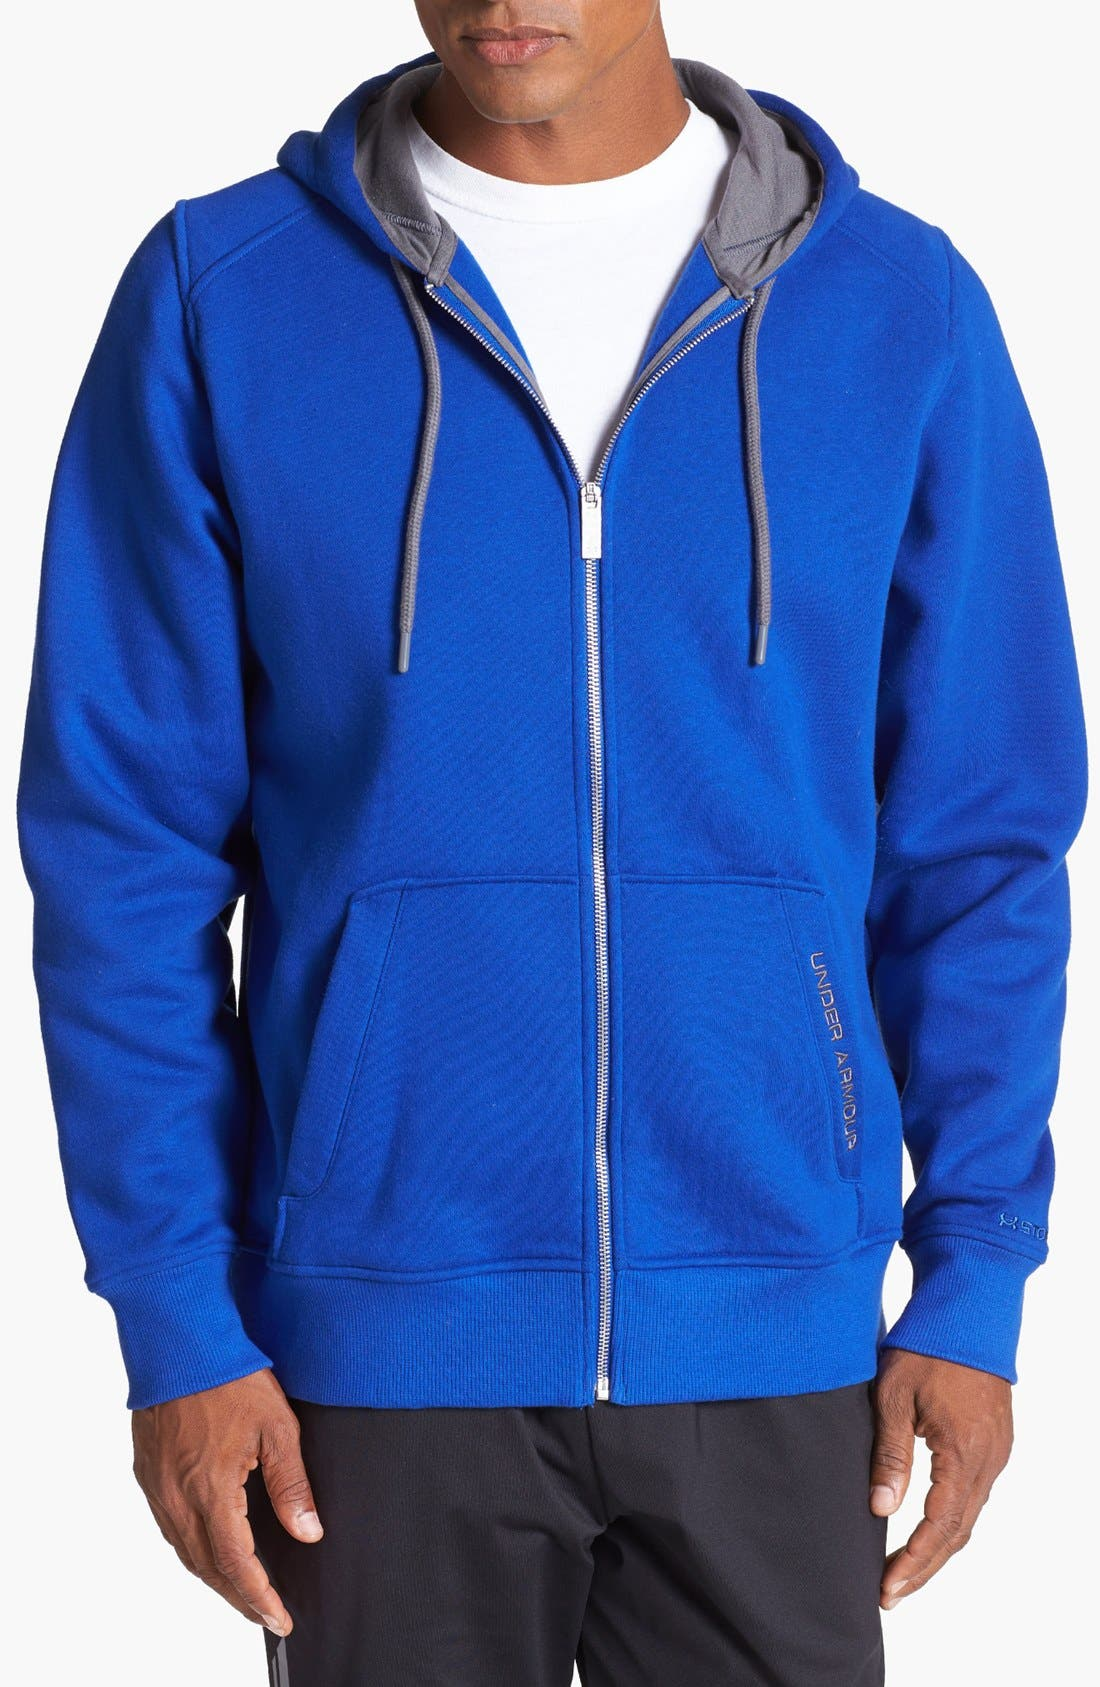 Alternate Image 1 Selected - Under Armour 'Charged Cotton®' Storm Zip Hoodie